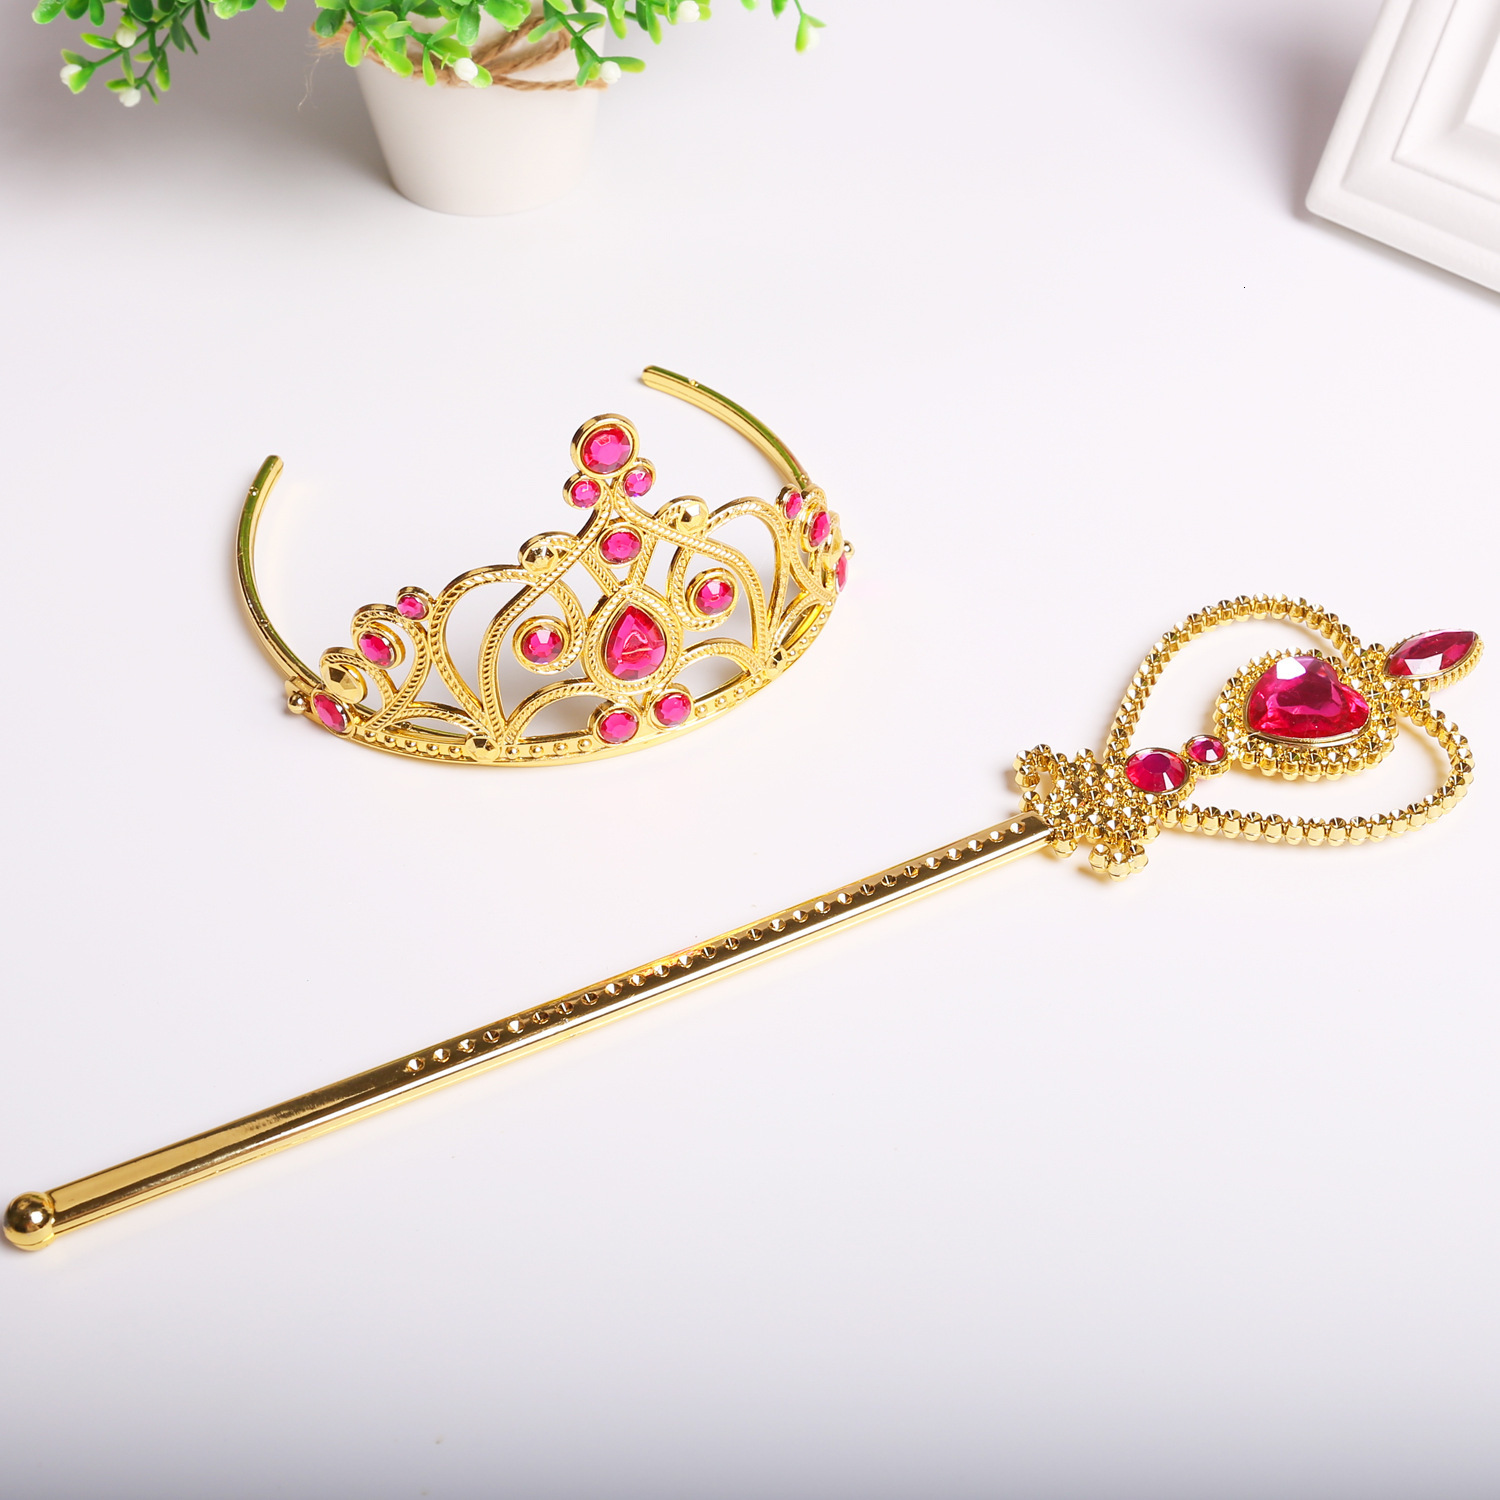 Children's Role Play Princess Crown Magic Wand Princess Party Props